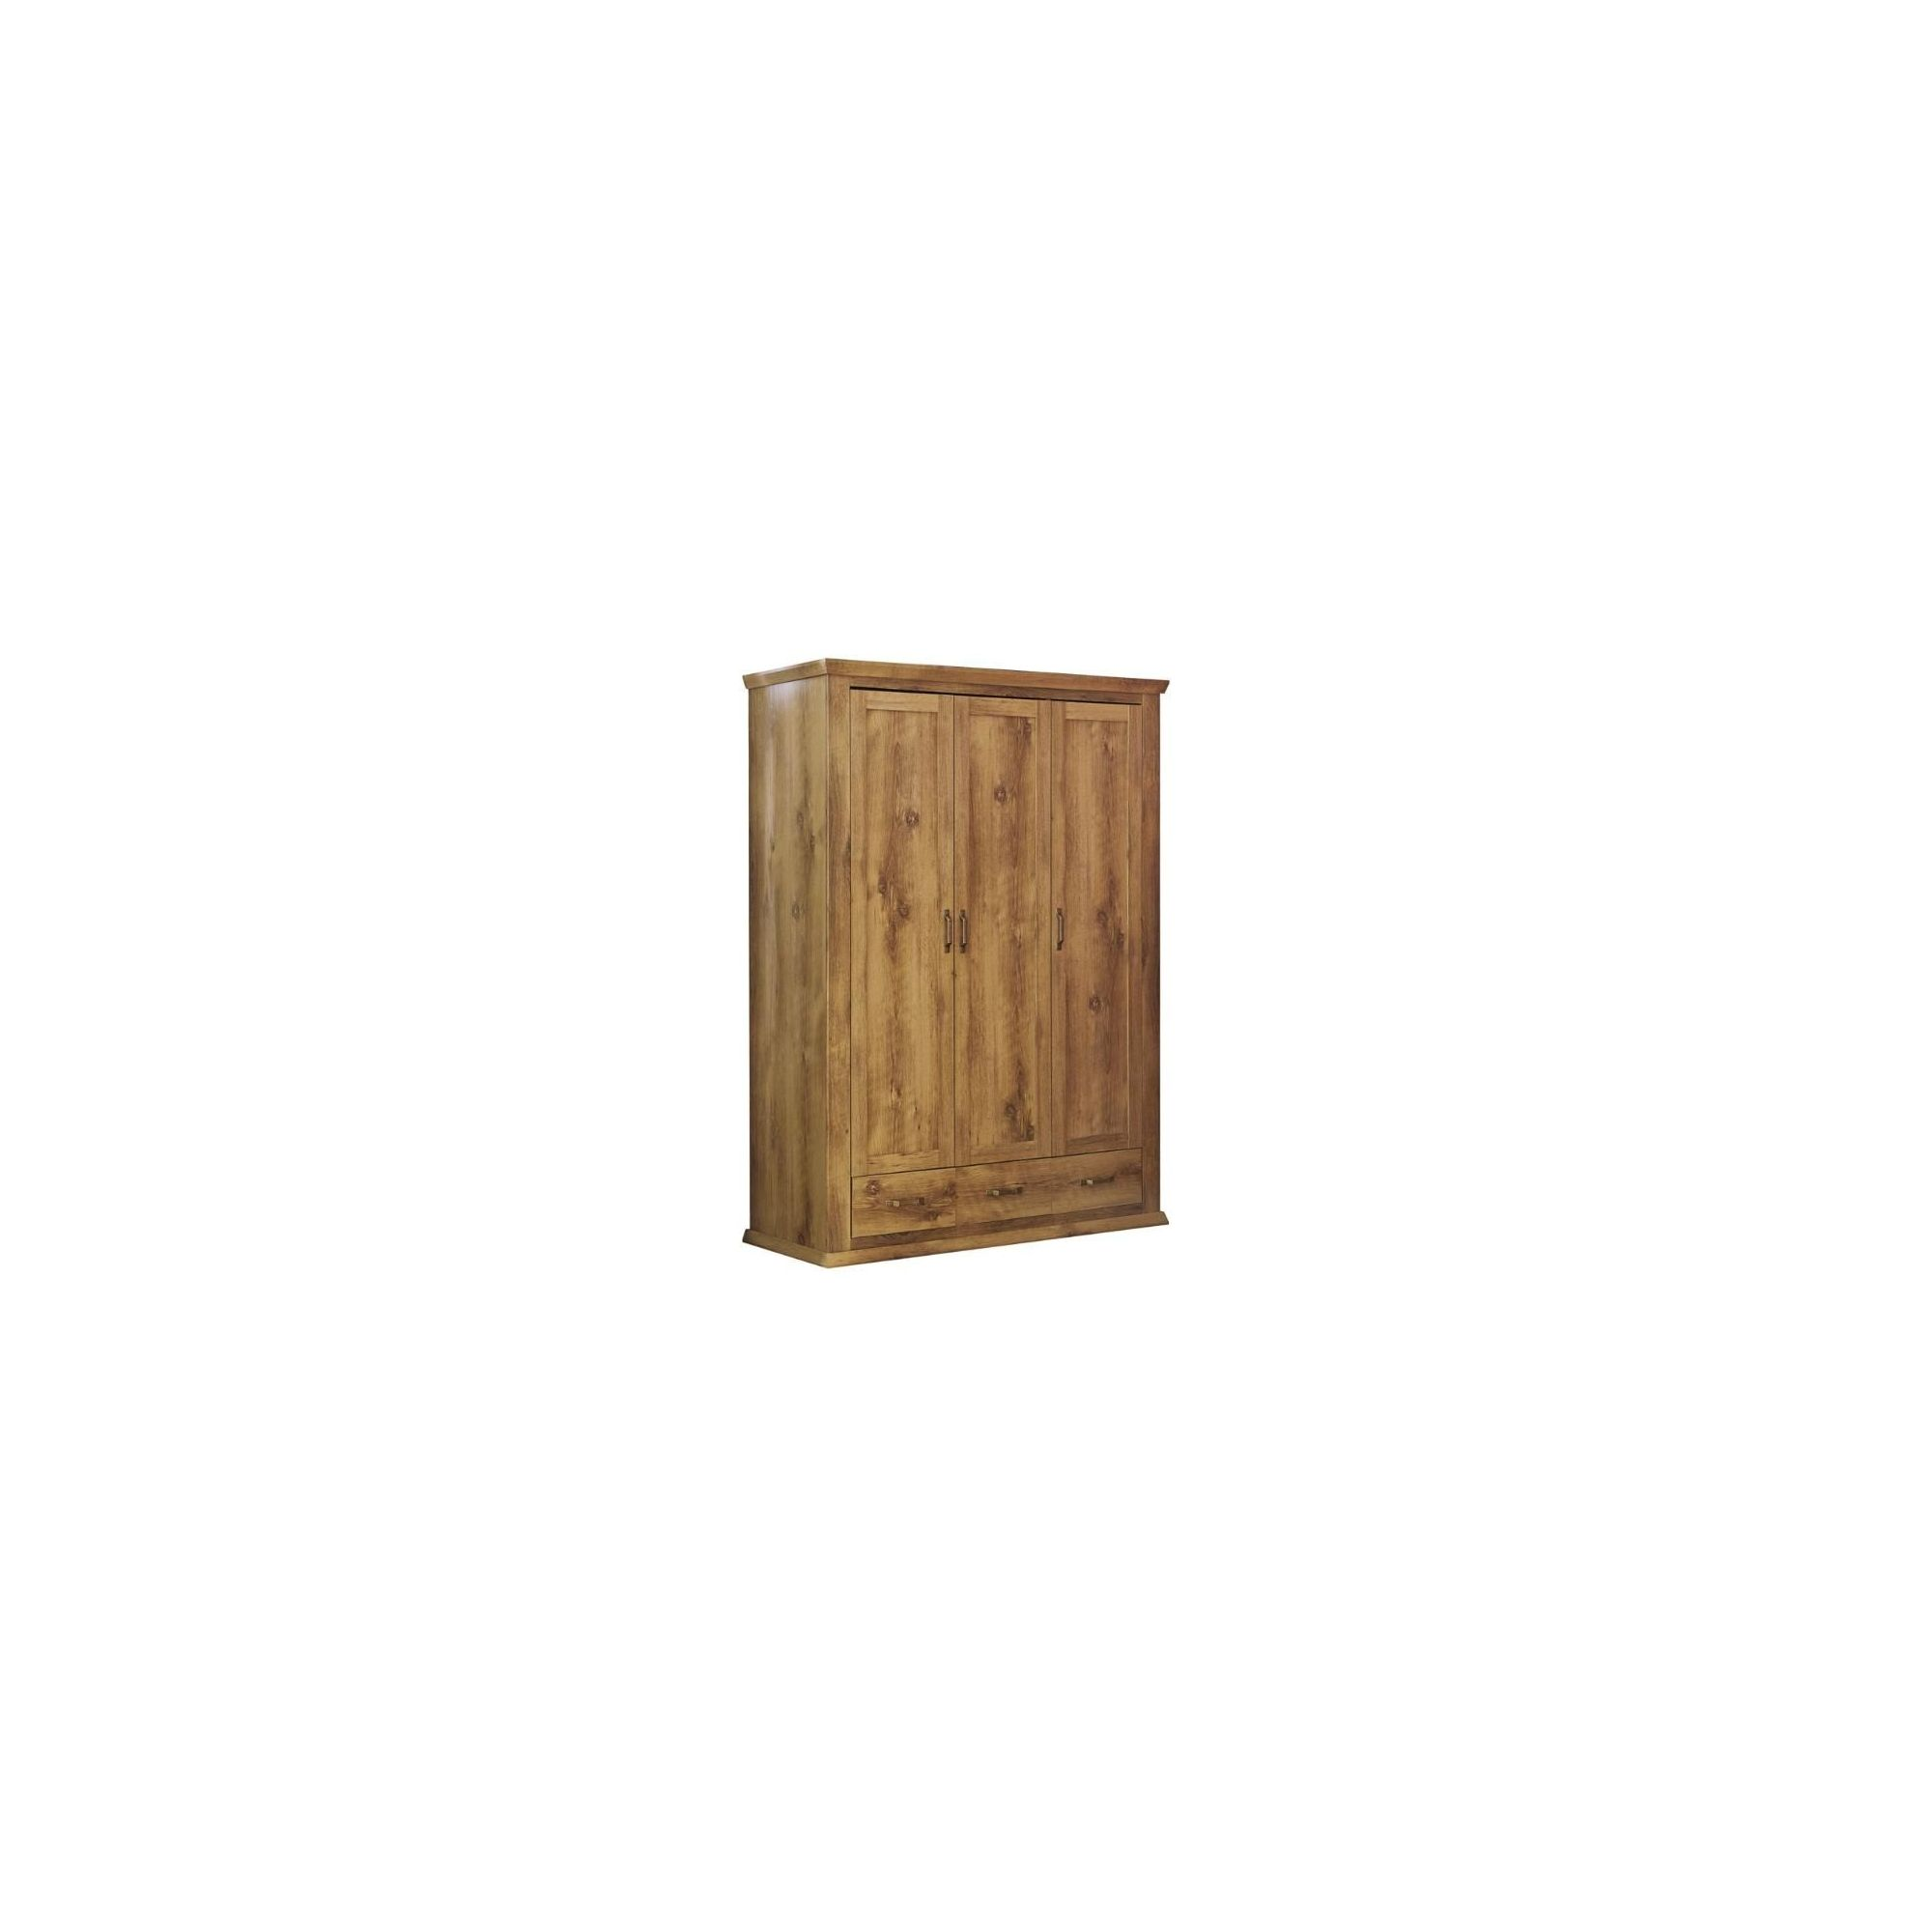 Urbane Designs Warwick 3 Door 3 Drawer Wardrobe at Tesco Direct